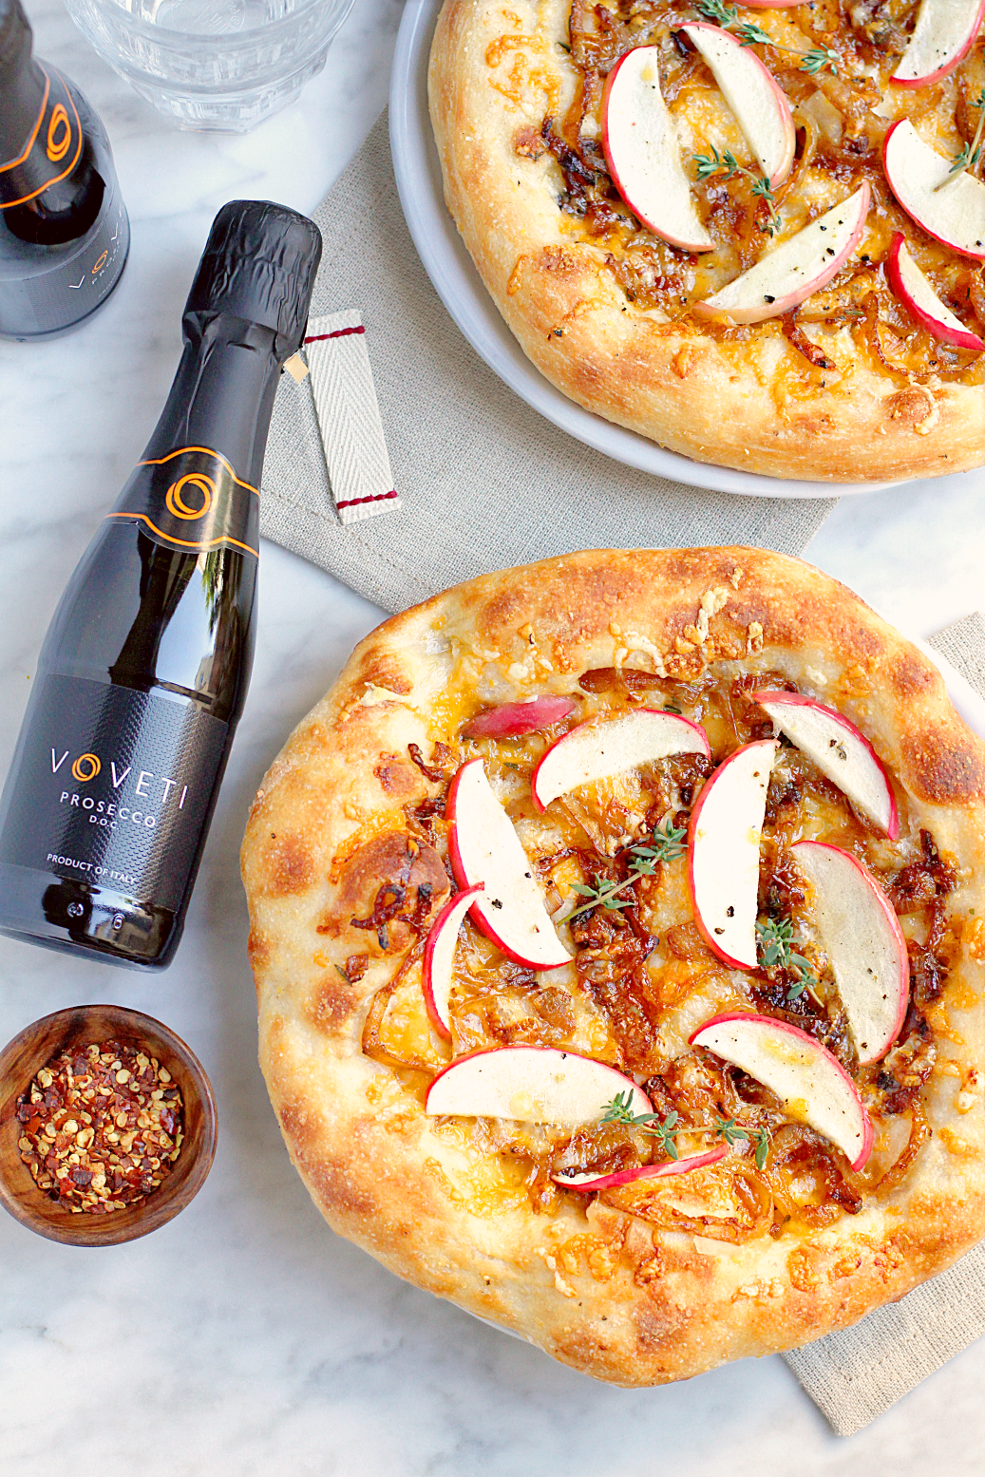 Image of apple and caramelized onion pizza and VOVETI Prosecco from the top.